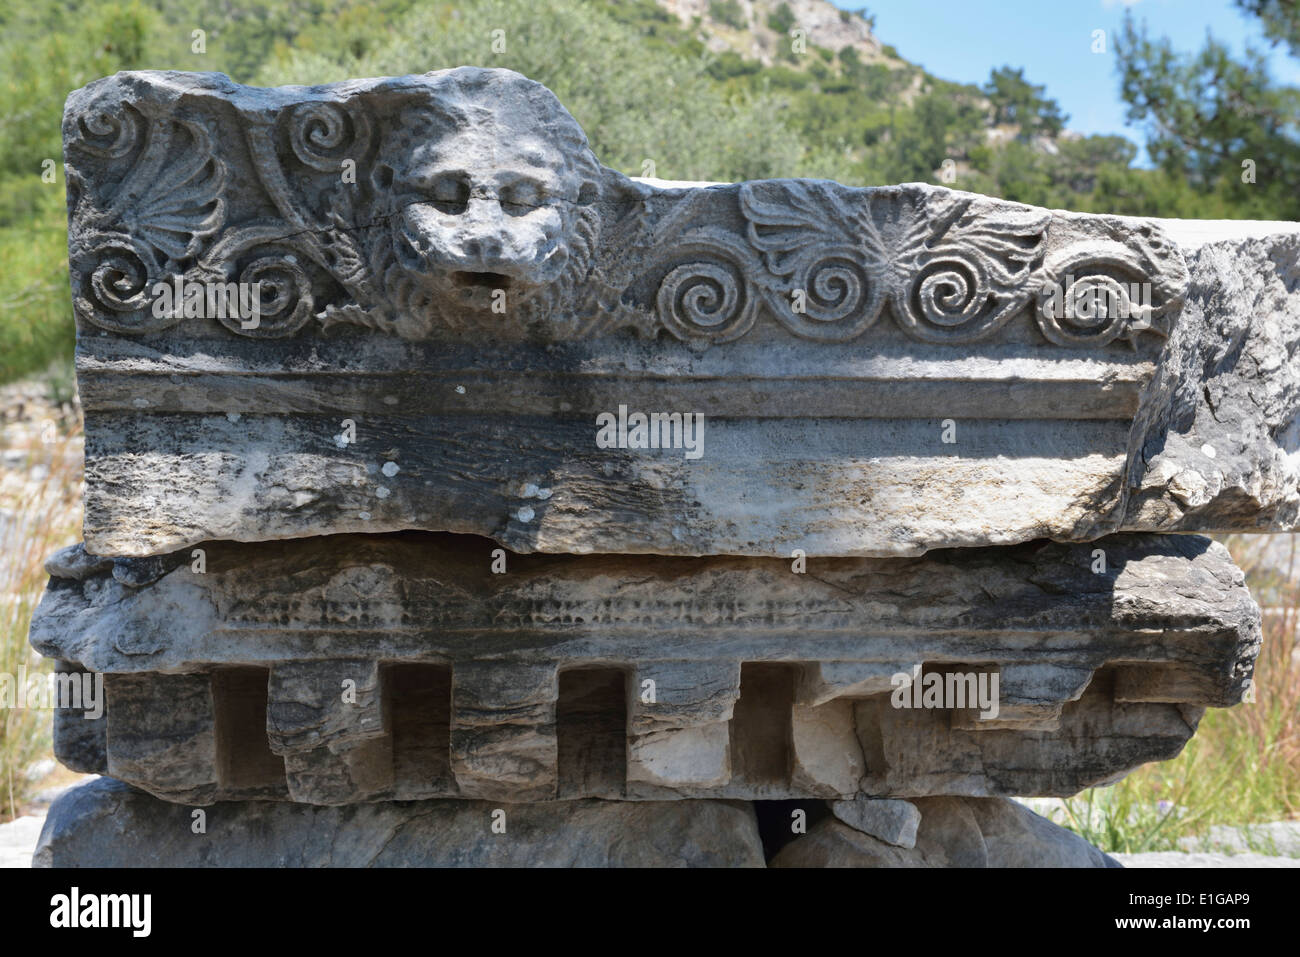 Lion faced downspout near temple of Asclepius, Priene,Turkey 140415_60705 - Stock Image